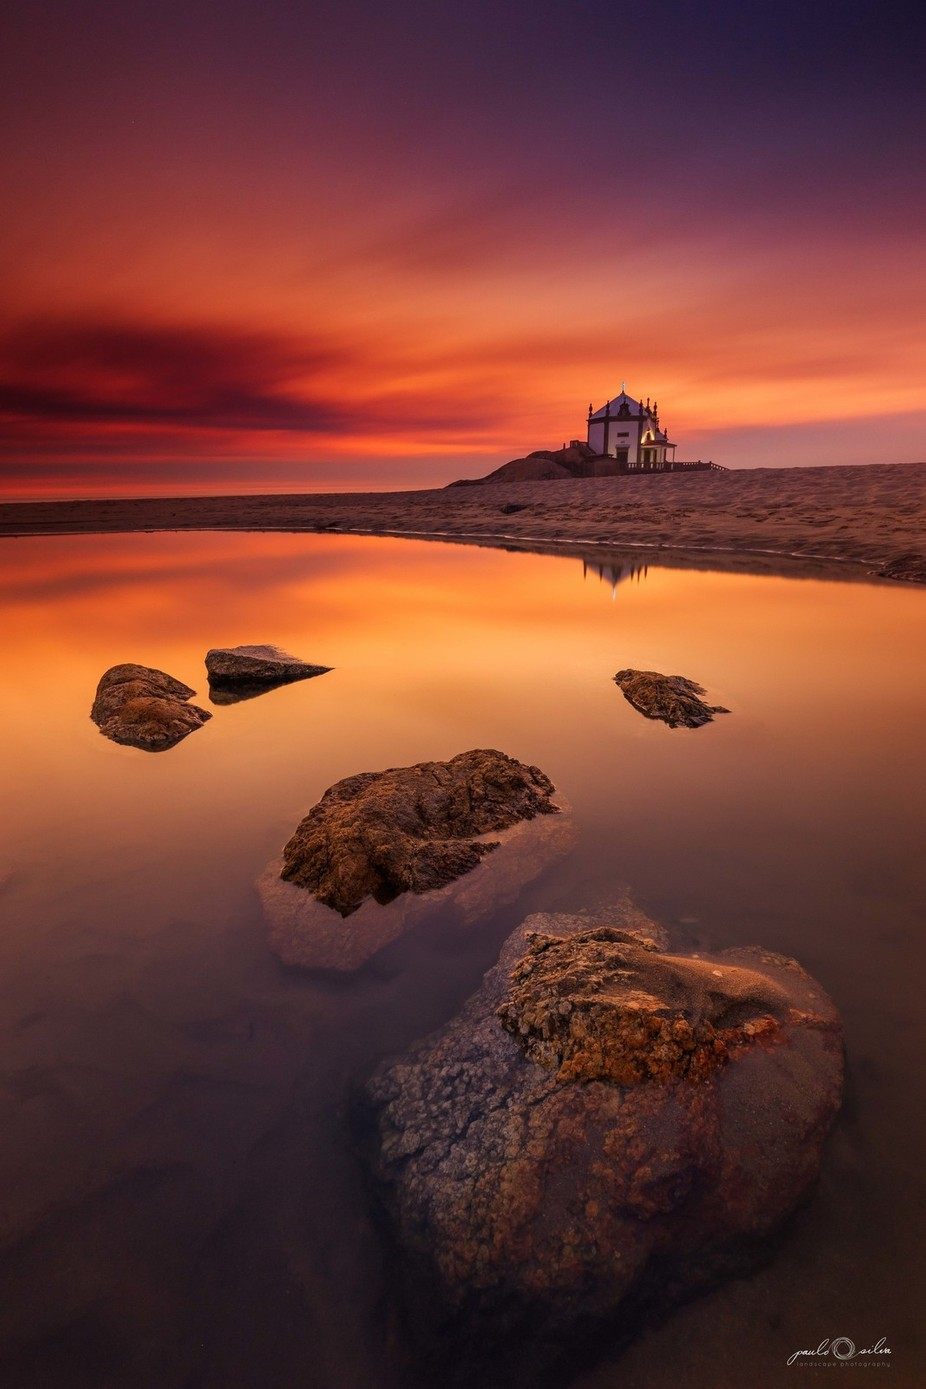 After the Sunset by pauloprinter - Image Of The Month Photo Contest Vol 27